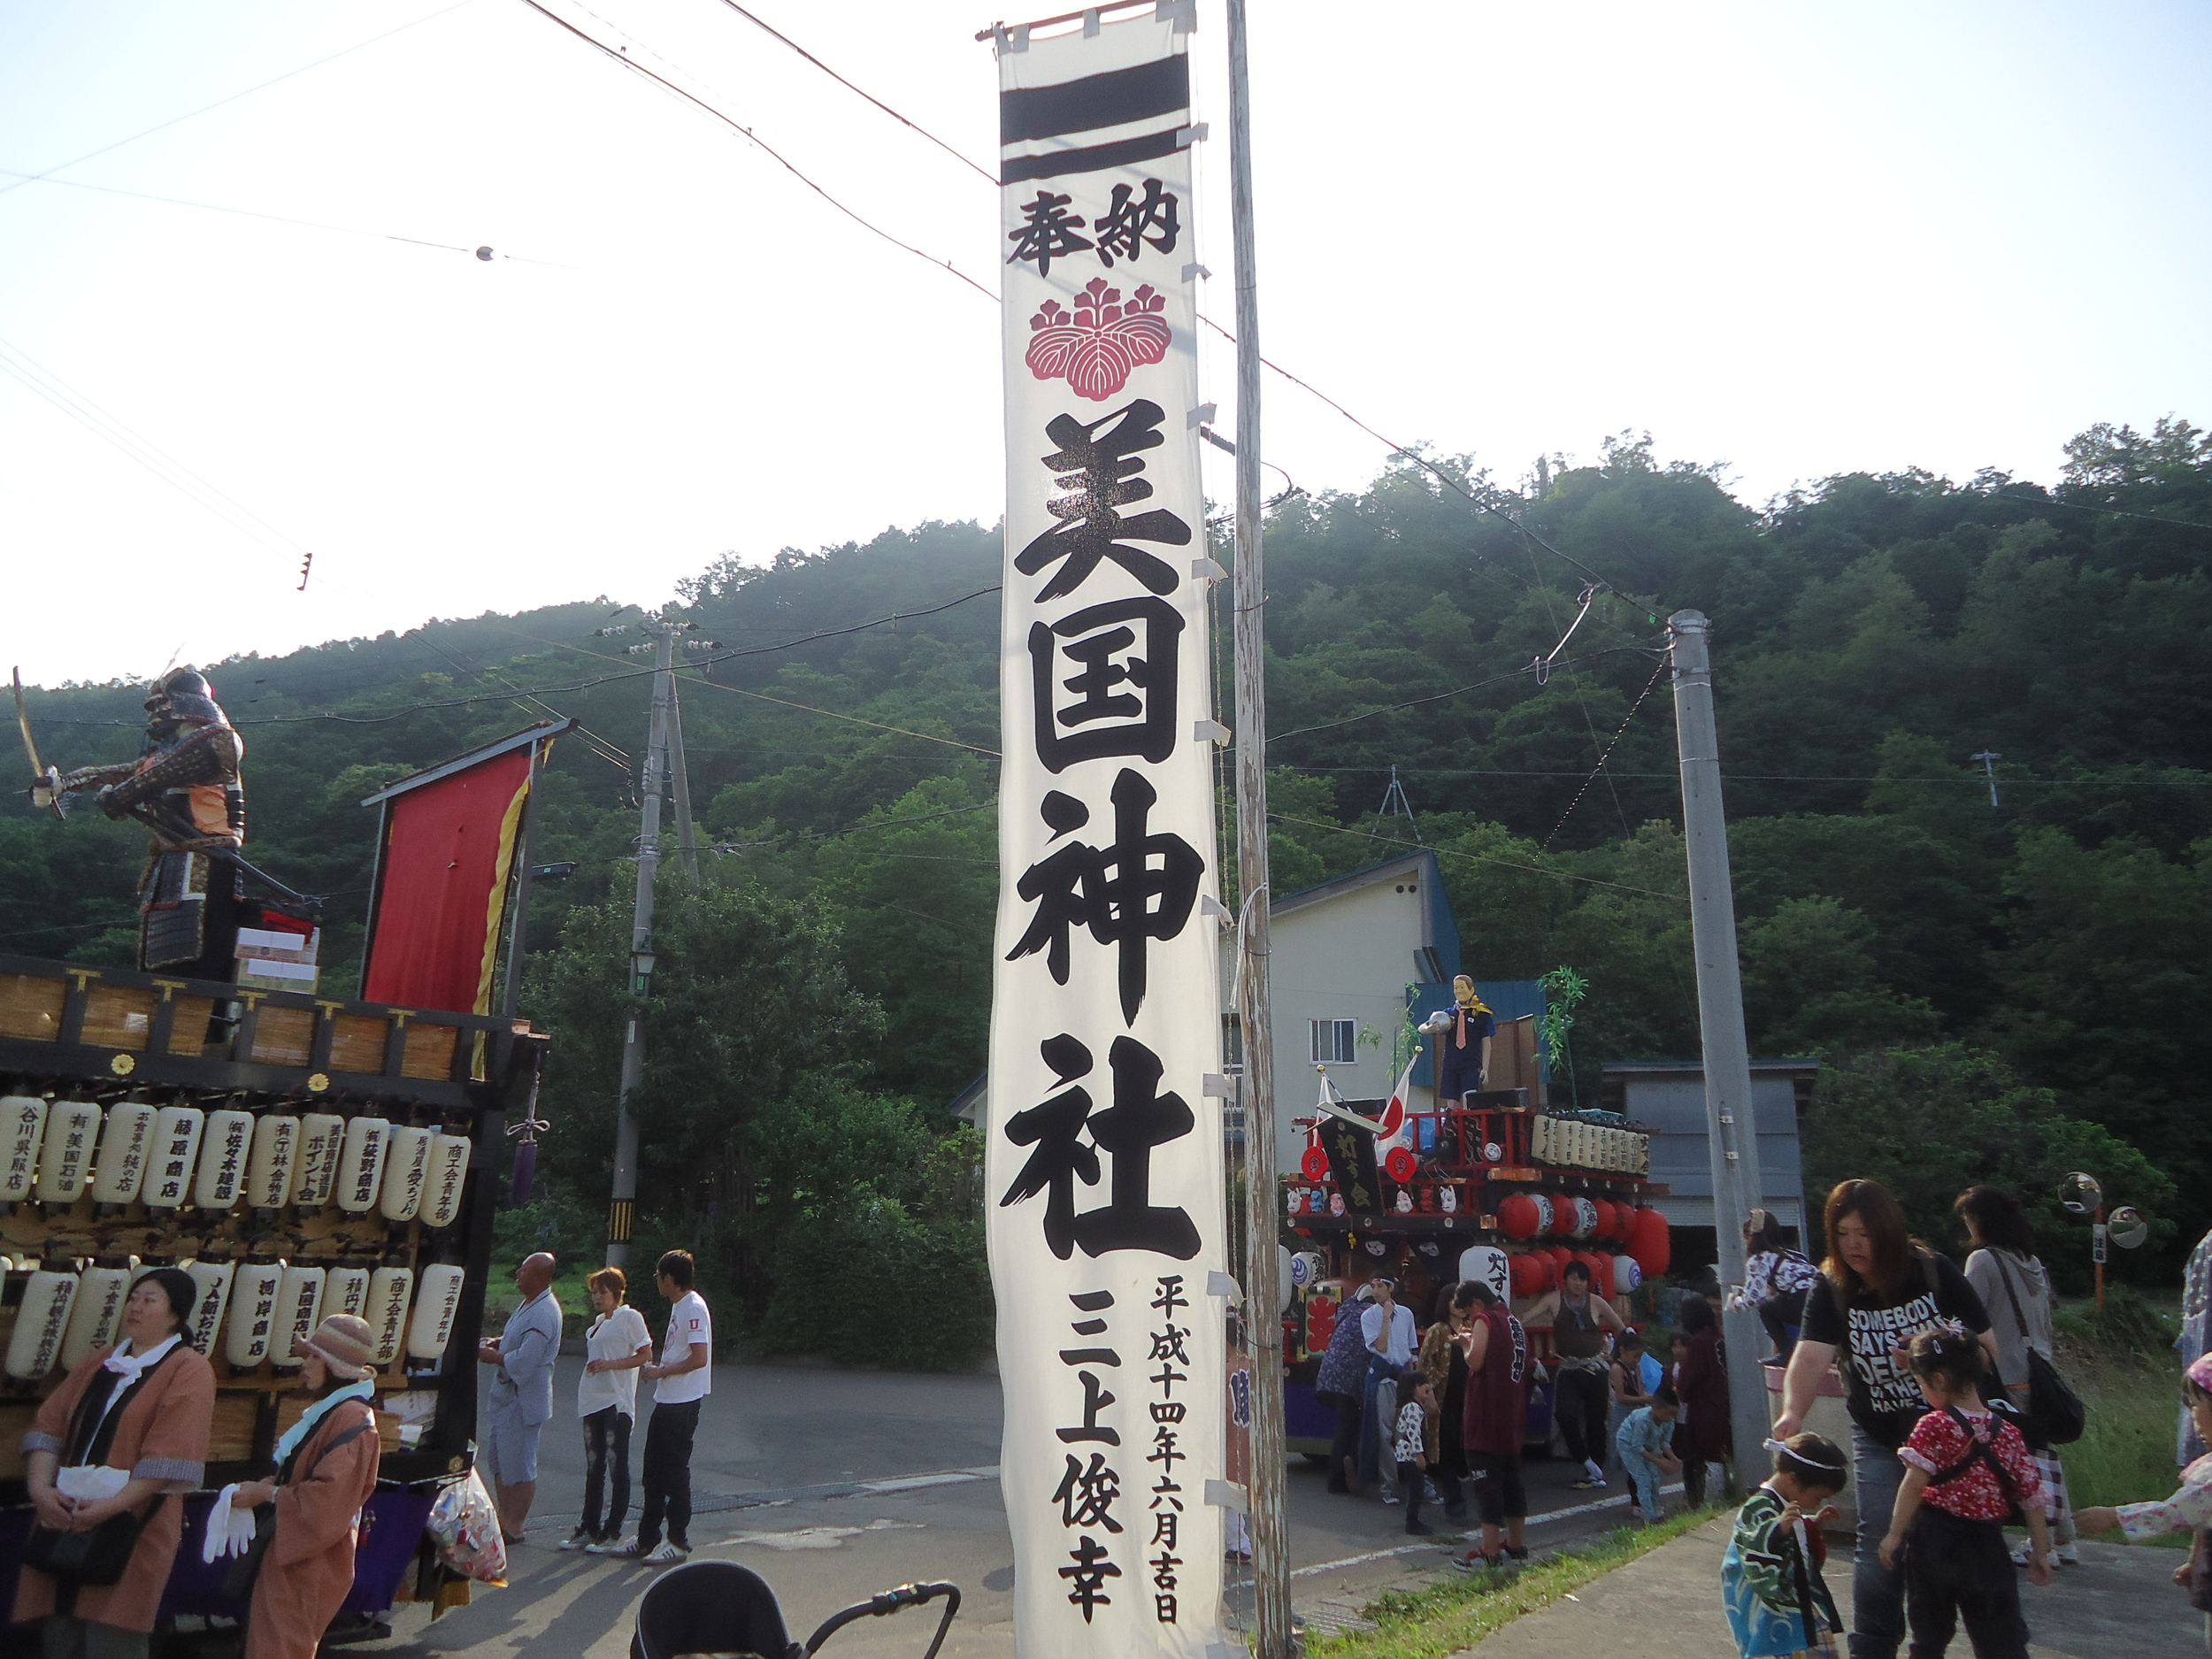 Bikuni Shrine Festival banner